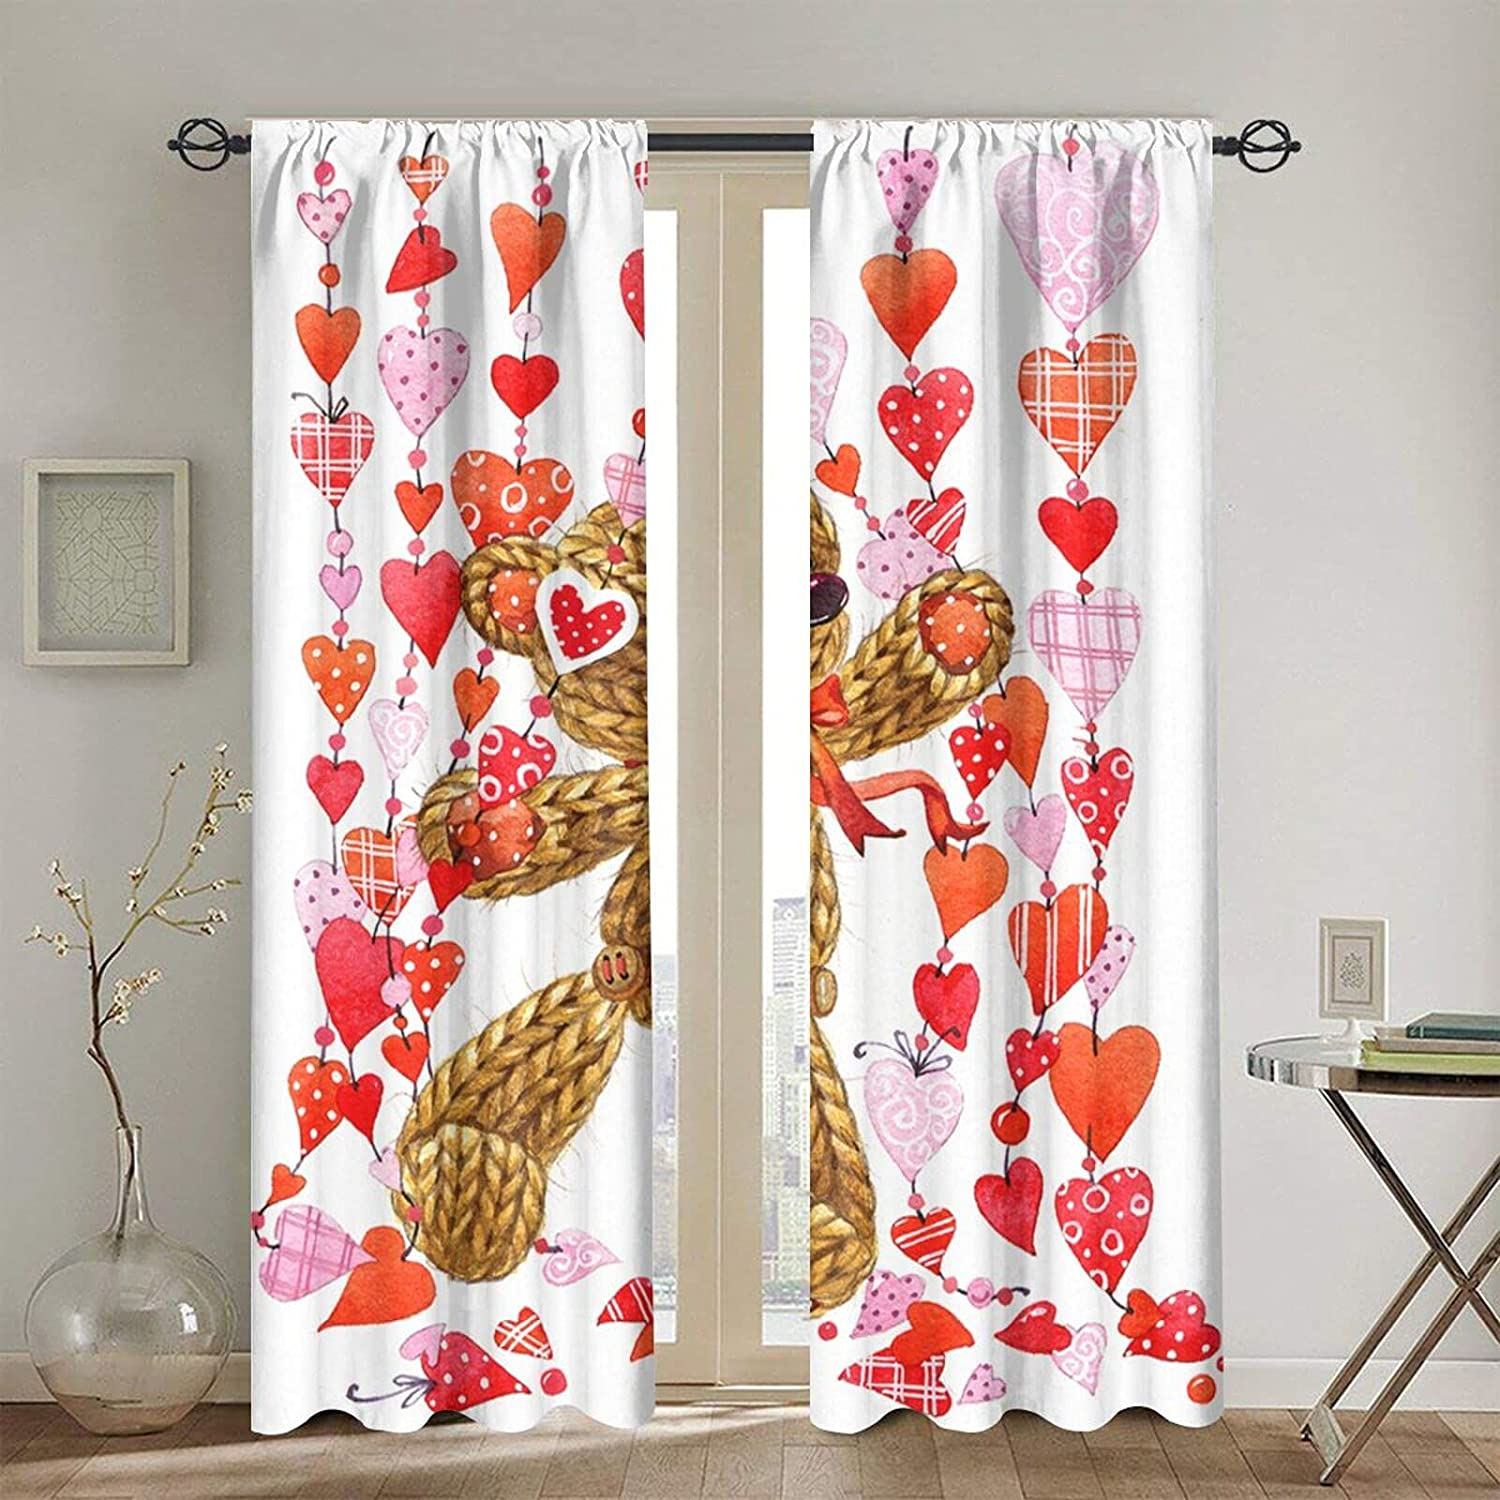 Rod Pocket Blackout Curtains Thermal Challenge the lowest price of Japan Curtain Window Insulated Cash special price Cu